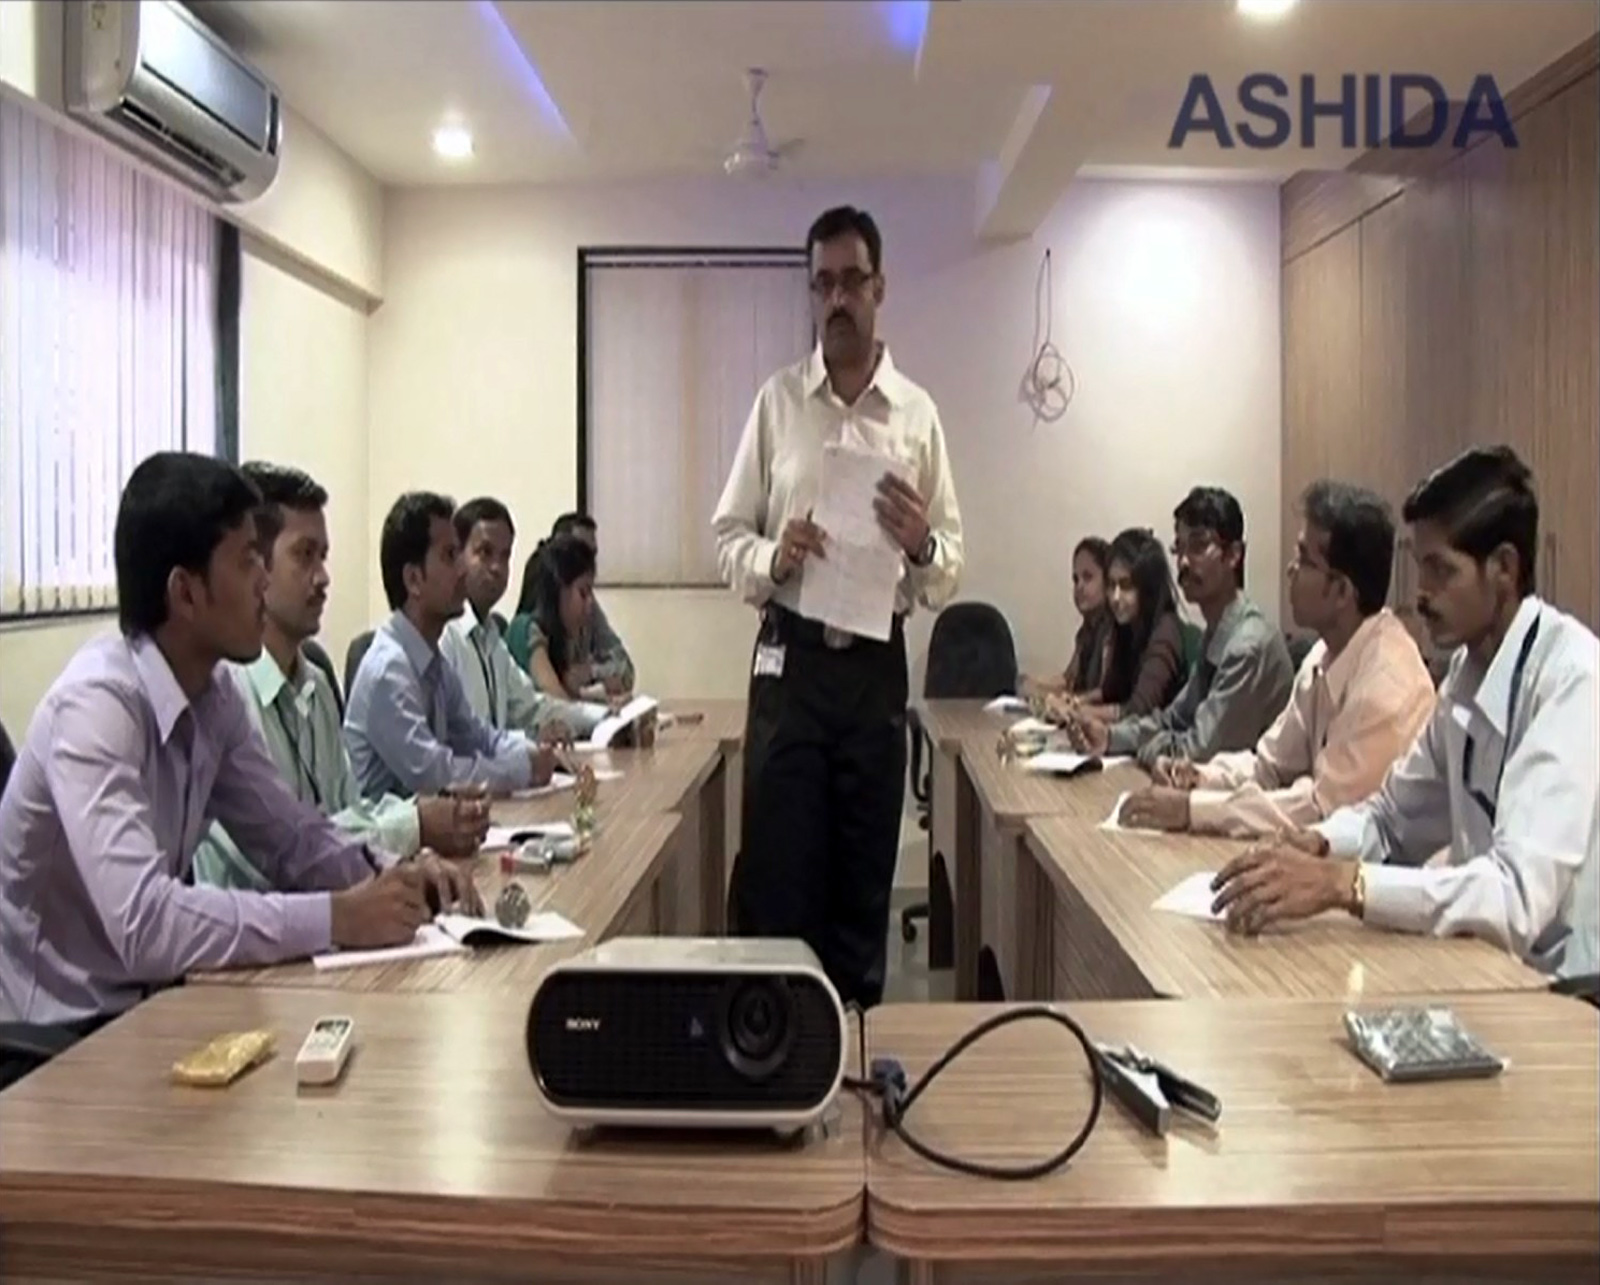 Ashida electronics employees doing meeting